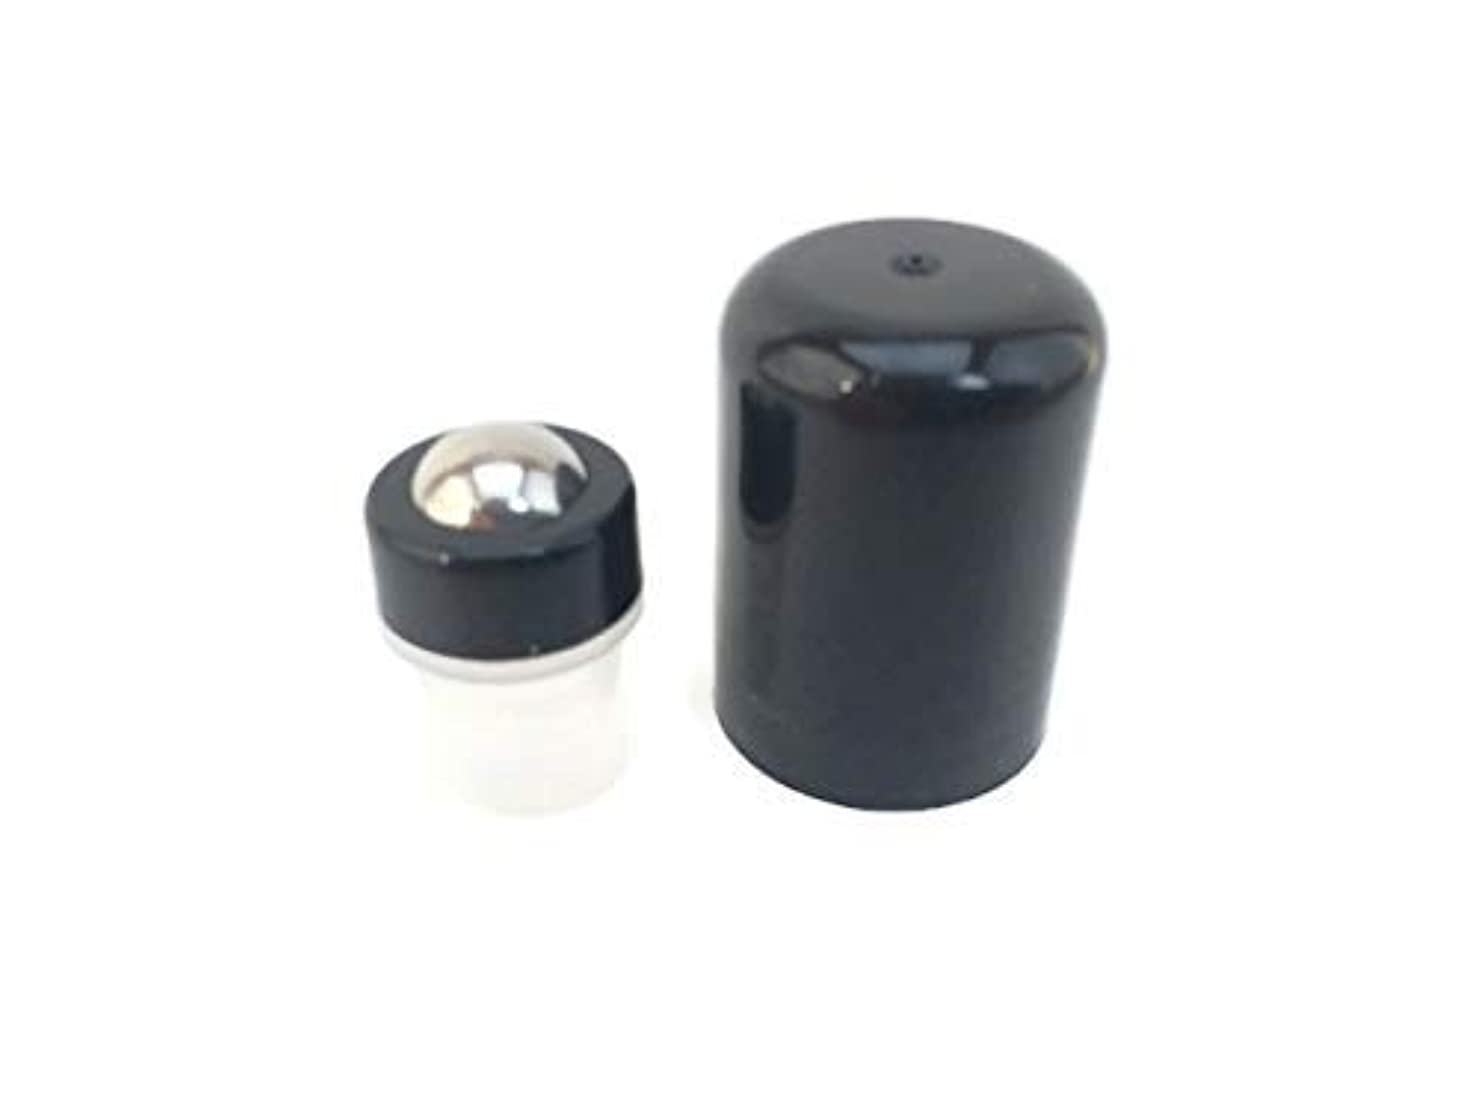 Essential Oil Roller Inserts for 5 and 15ml Essential Oil Bottles. Pack of 12 Stainless Steel Leak Proof with...